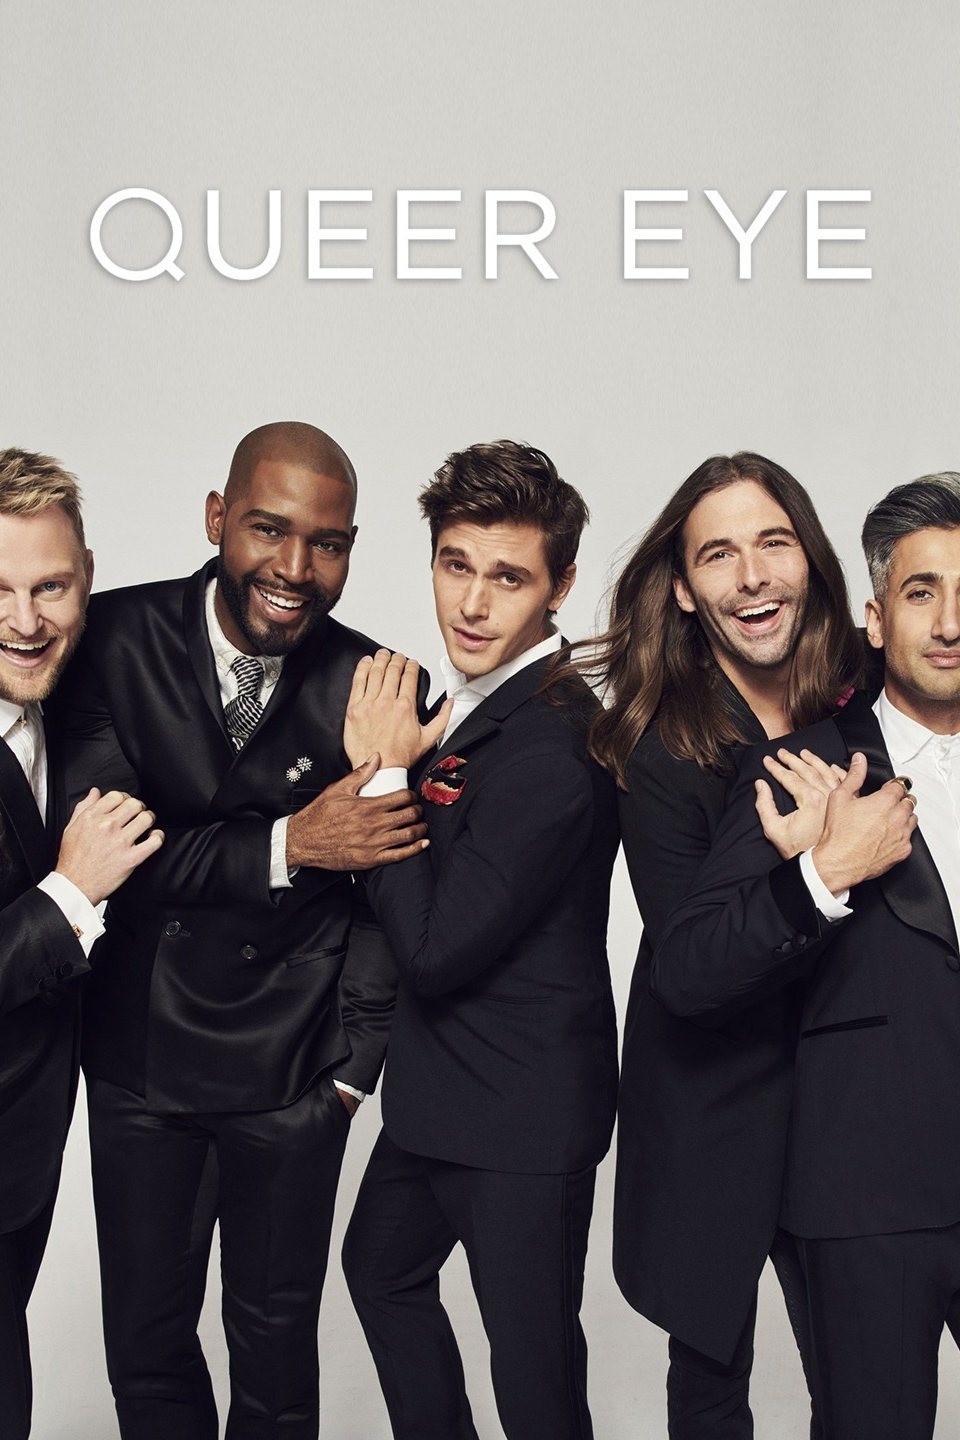 queer eye season 2 - I've saved the best watch till last. Although I doubt there is anybody out there now who hasn't' watched the wonderful Queer Eye. The second season came out a few weeks ago and it was just as good, if not better than the first. The Fab 5 are just wonderful, wonderful humans and even though you're not the one being made over you feel better about yourself watching this show.